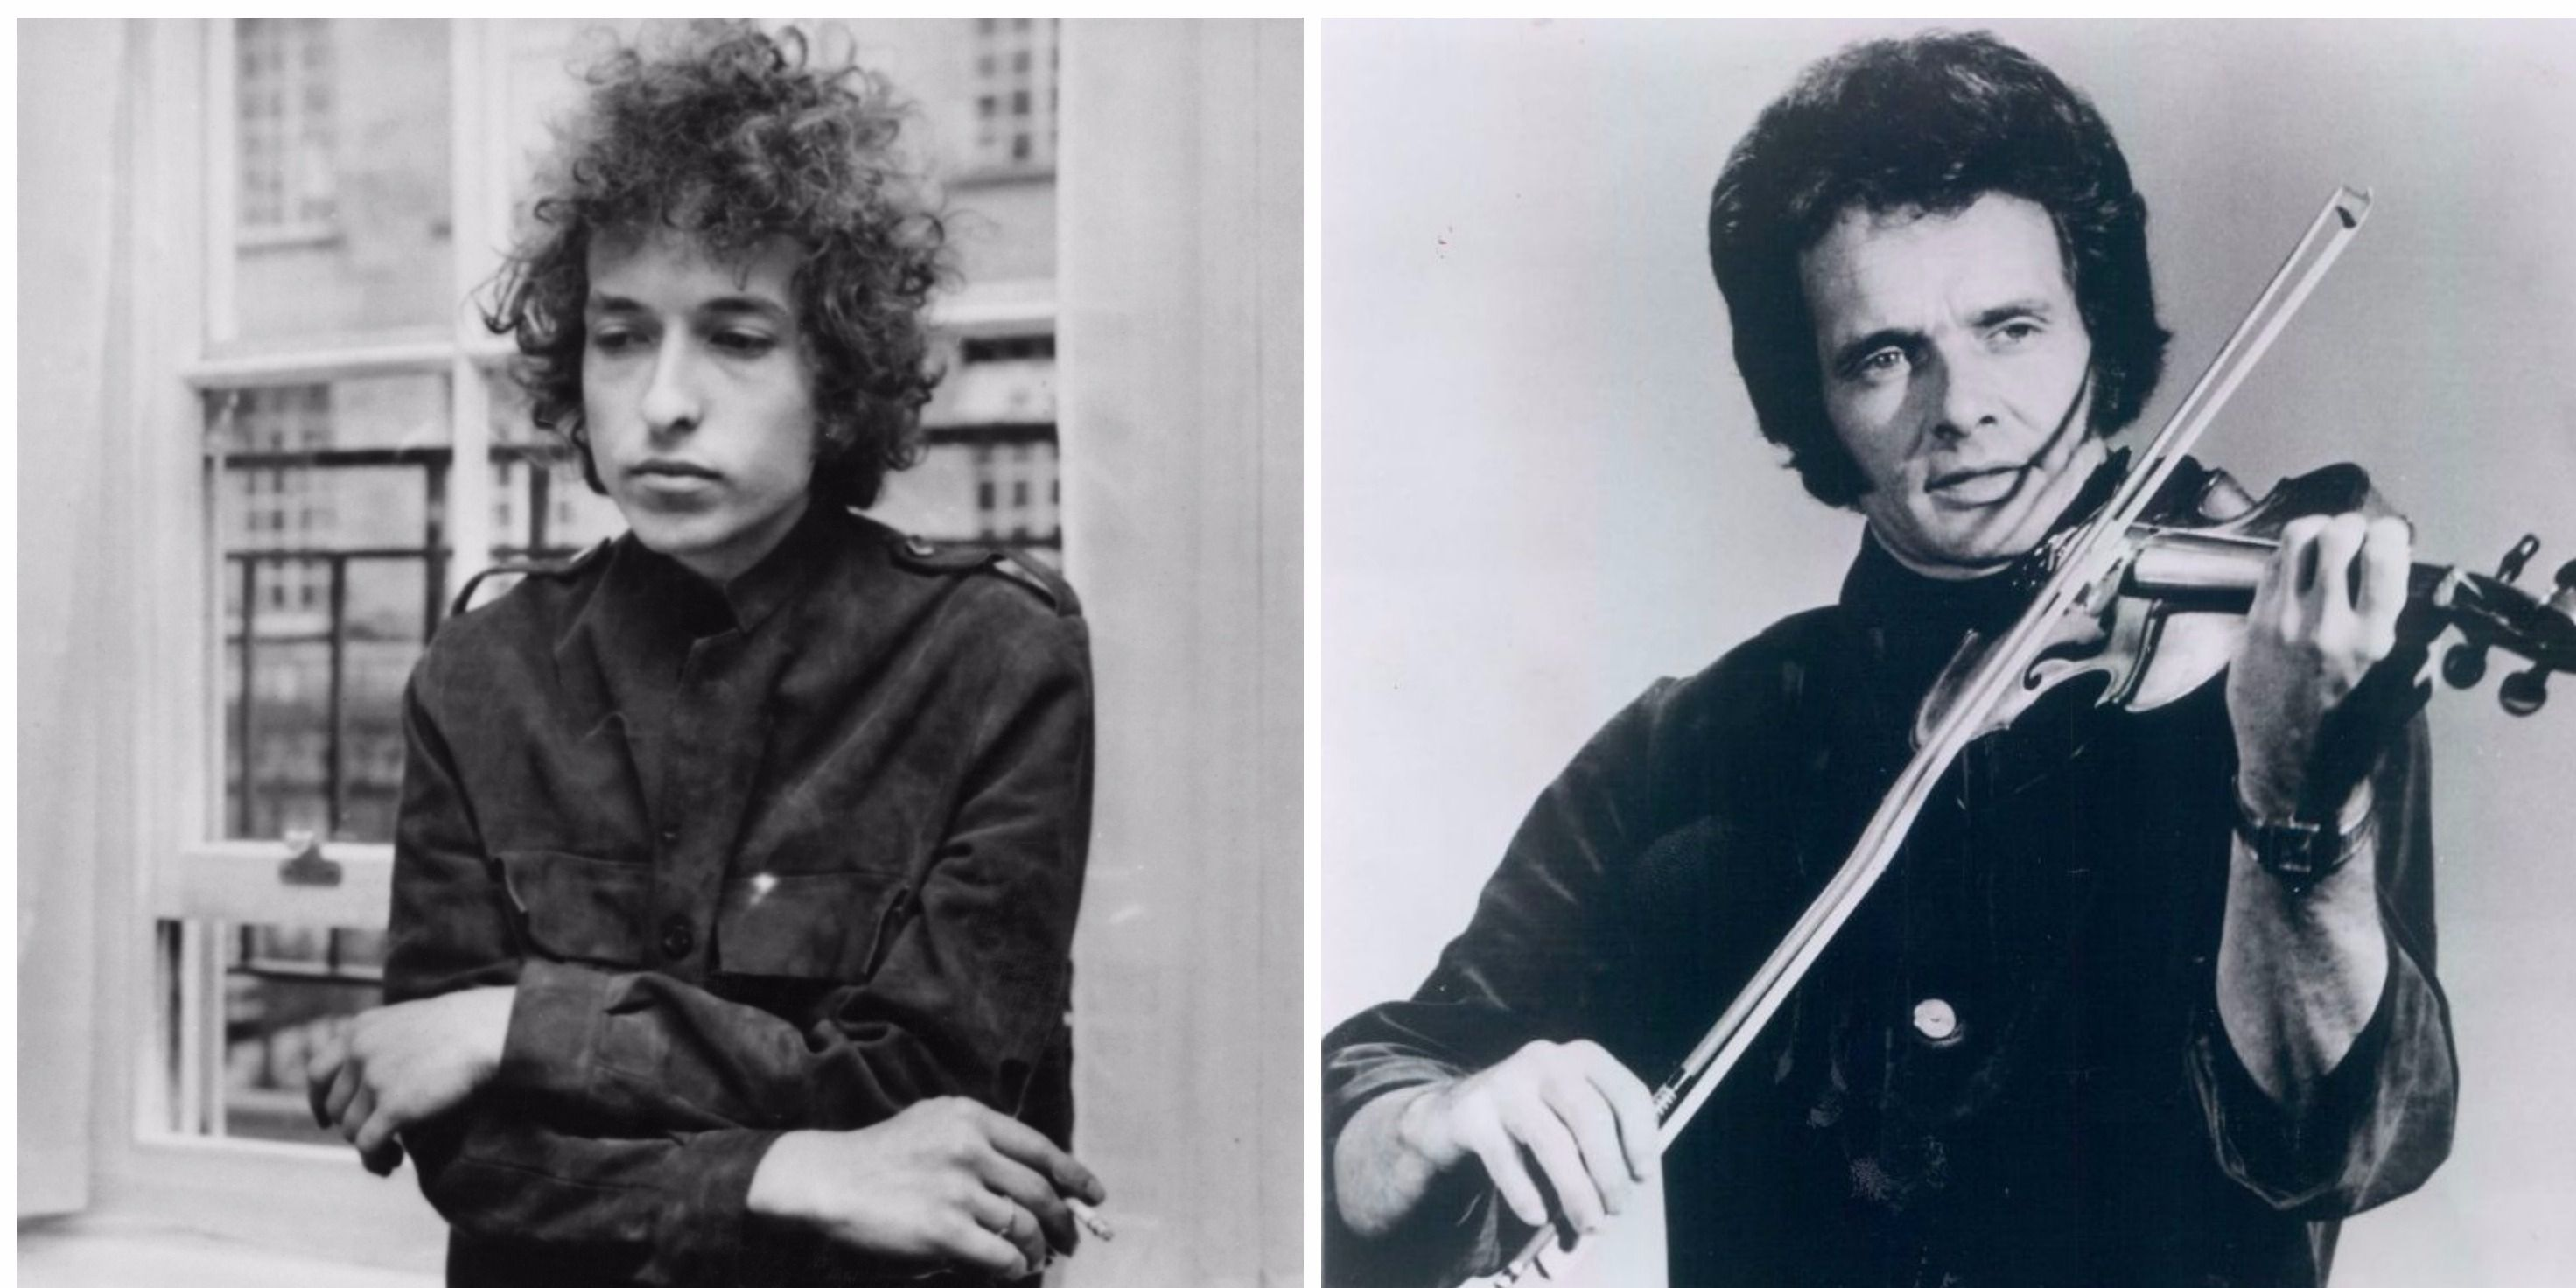 A young Bob Dylan and Merle Haggard.